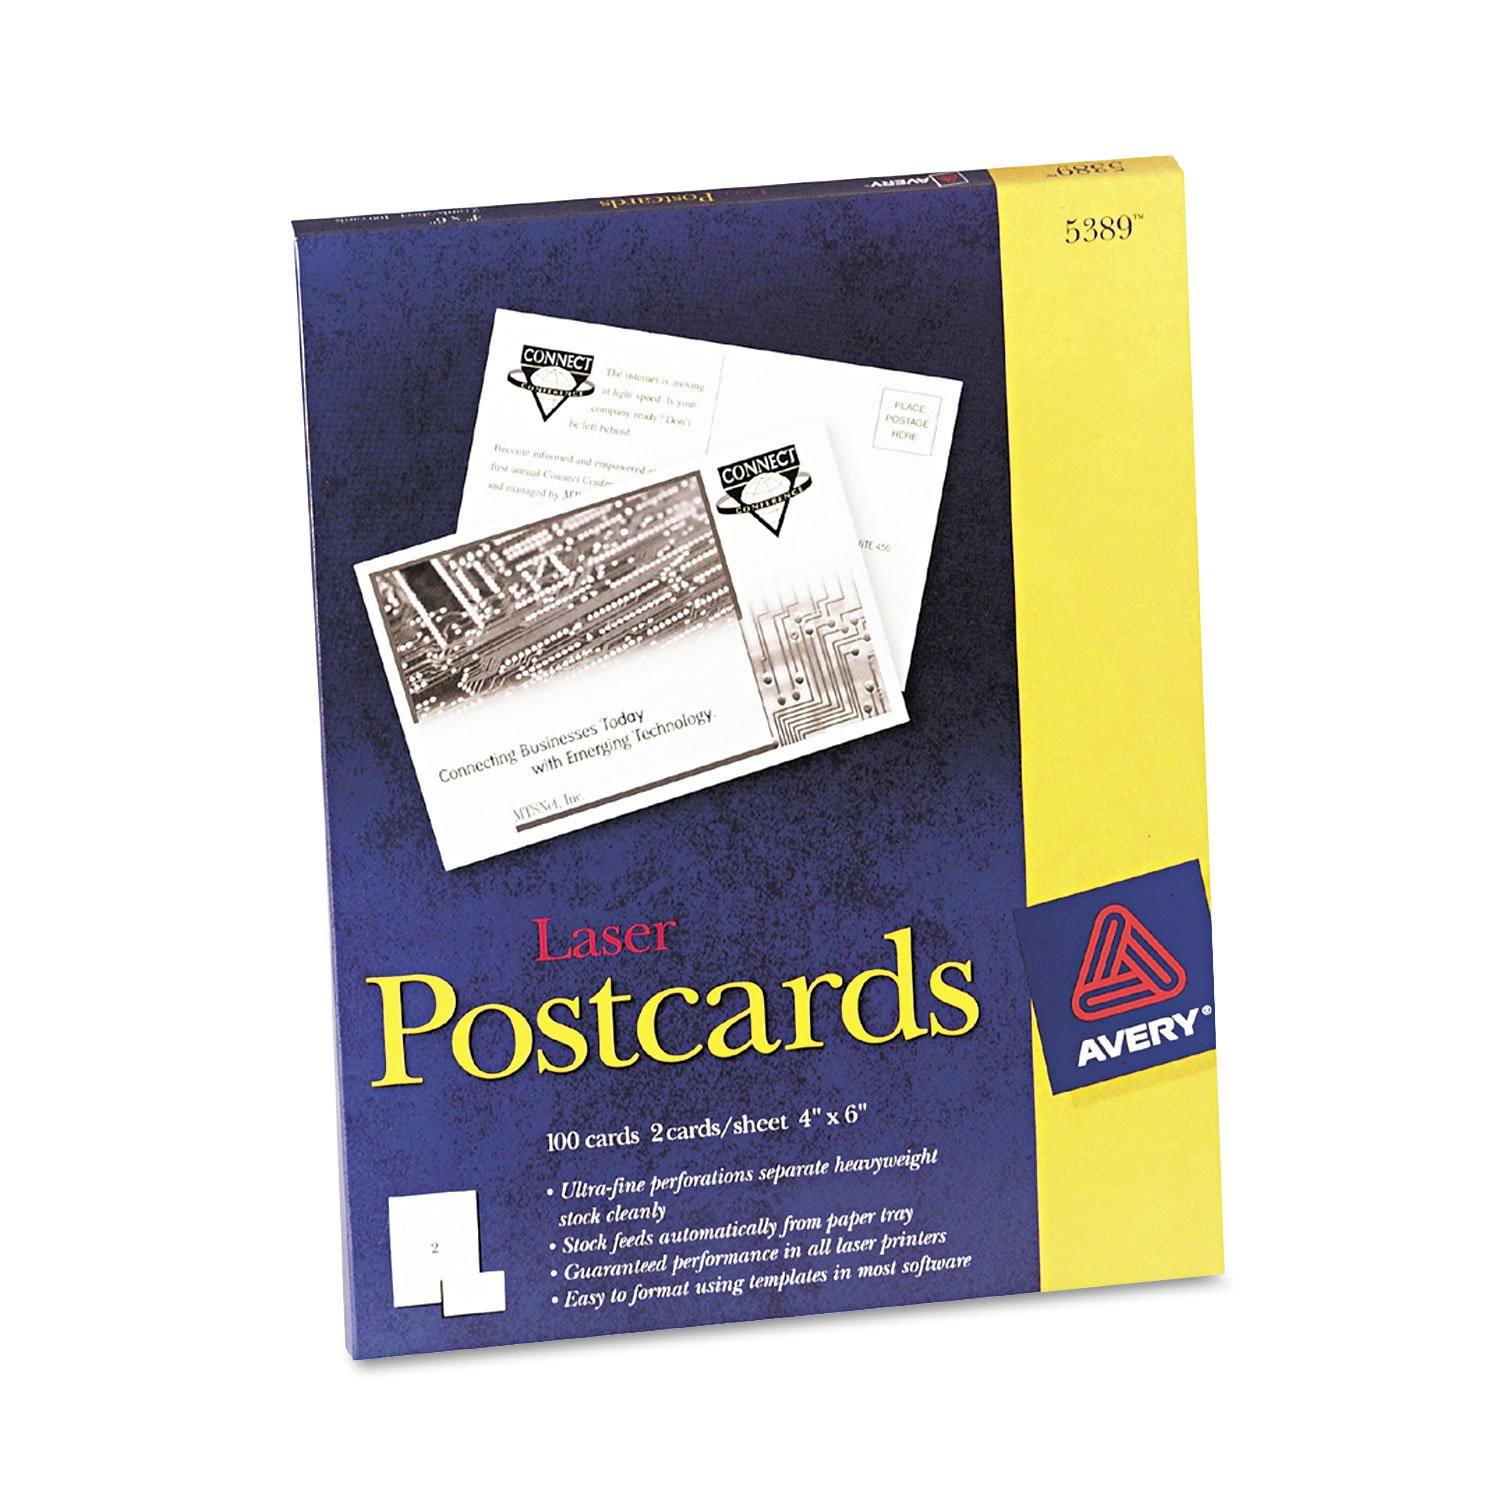 Avery 5389 Laser Postcards, Perforated, 4-Inch x6-Inch, 100/BX, White by AVERY